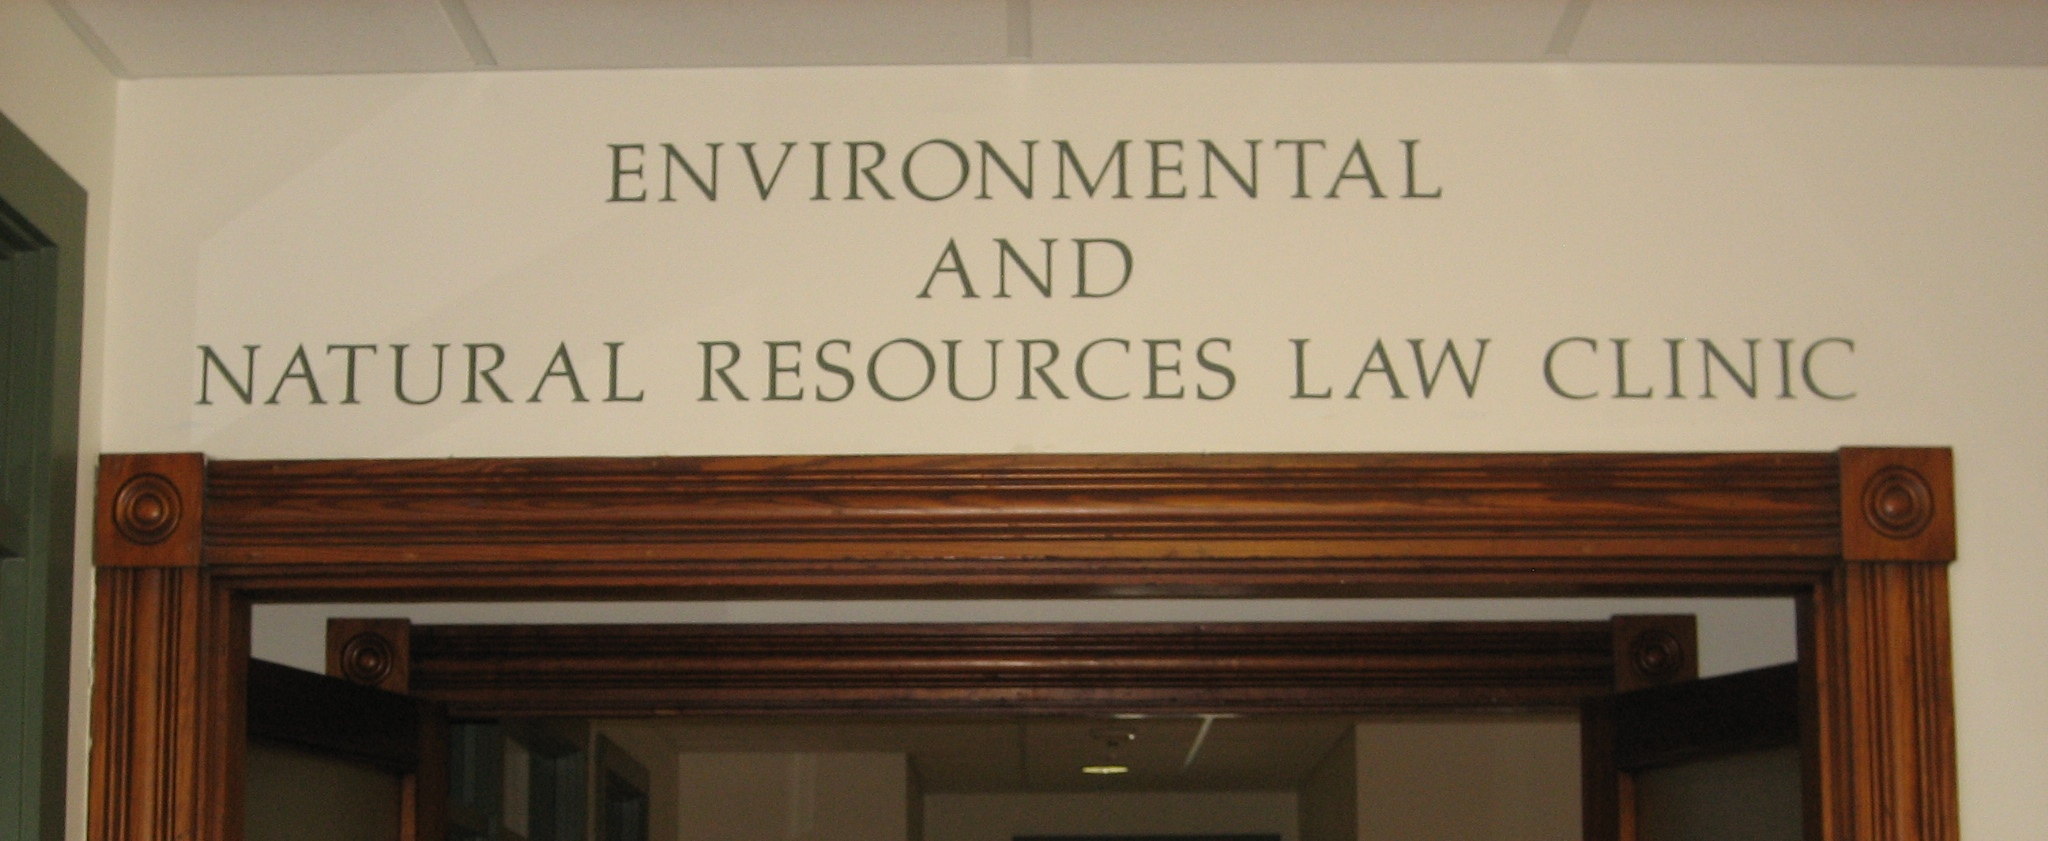 The Environmental and Natural Resources Law Clinic opening its doors in 2003